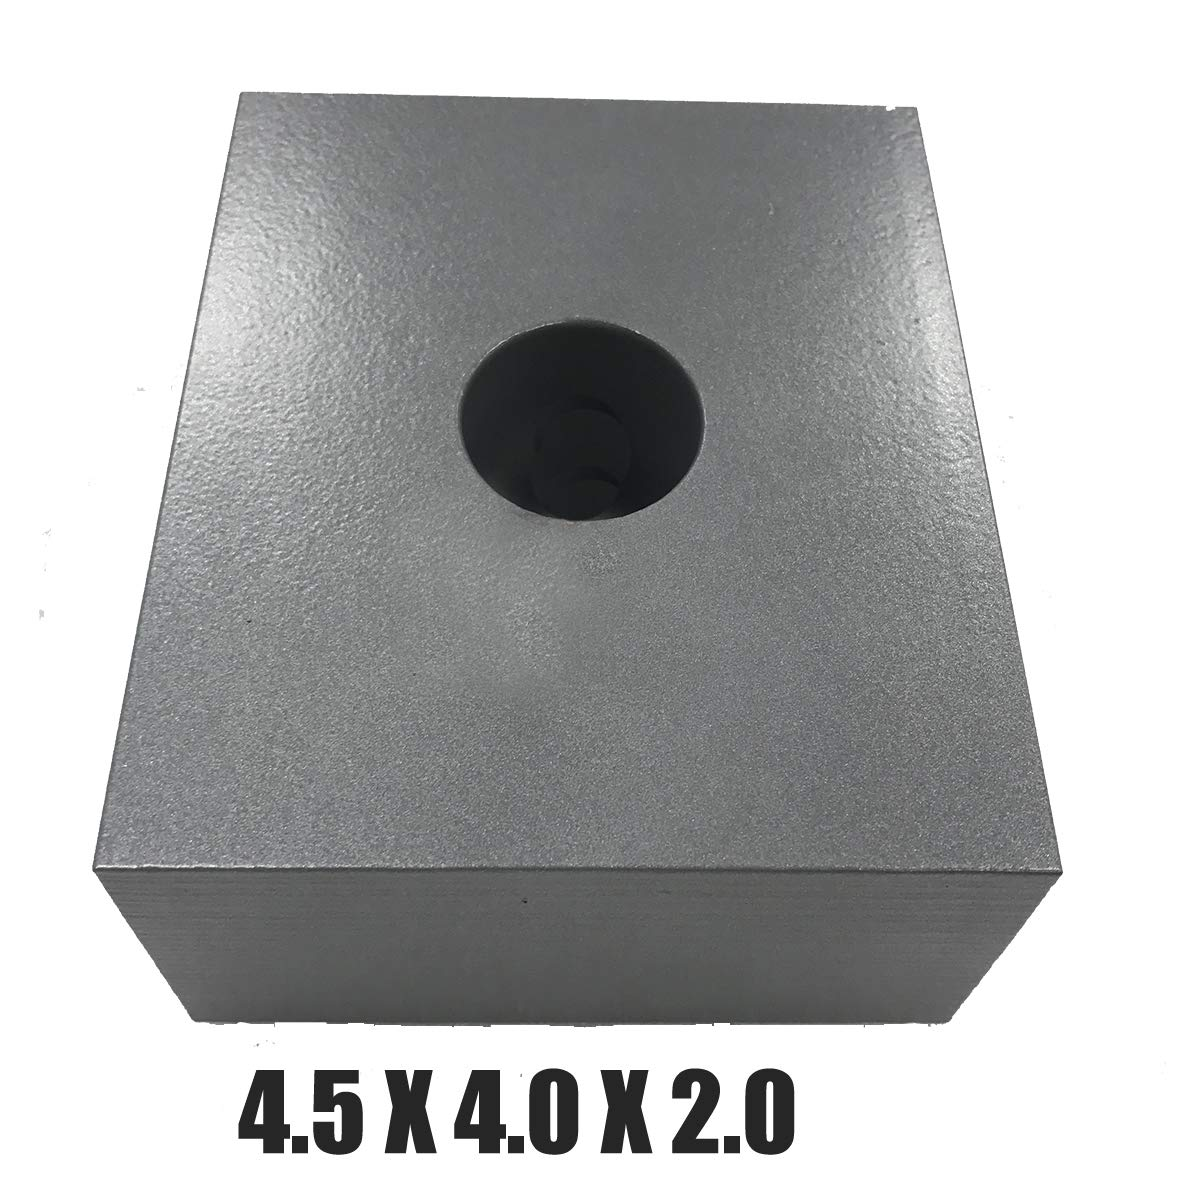 Grade A Tools Replacement Height Spacers for Chief Fast Anchoring System (Spacer Size 2.0)